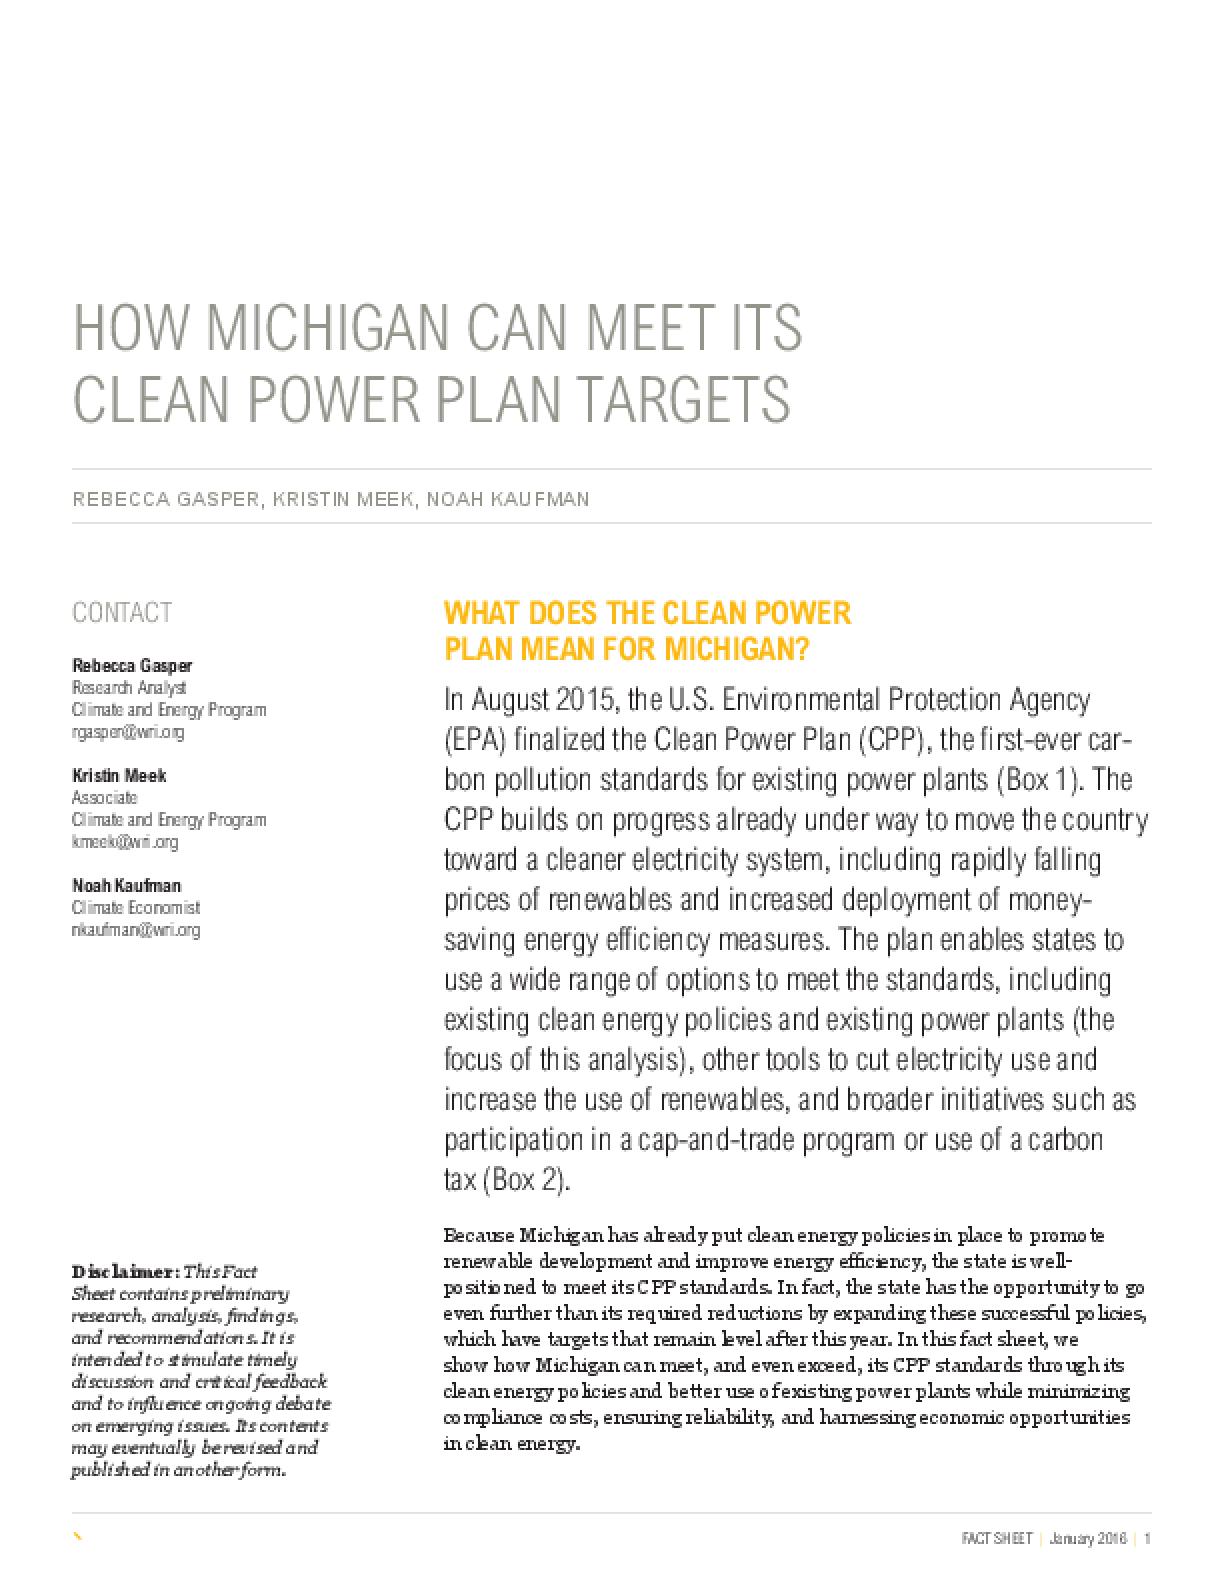 How Michigan Can Meet Its Clean Power Plan Targets